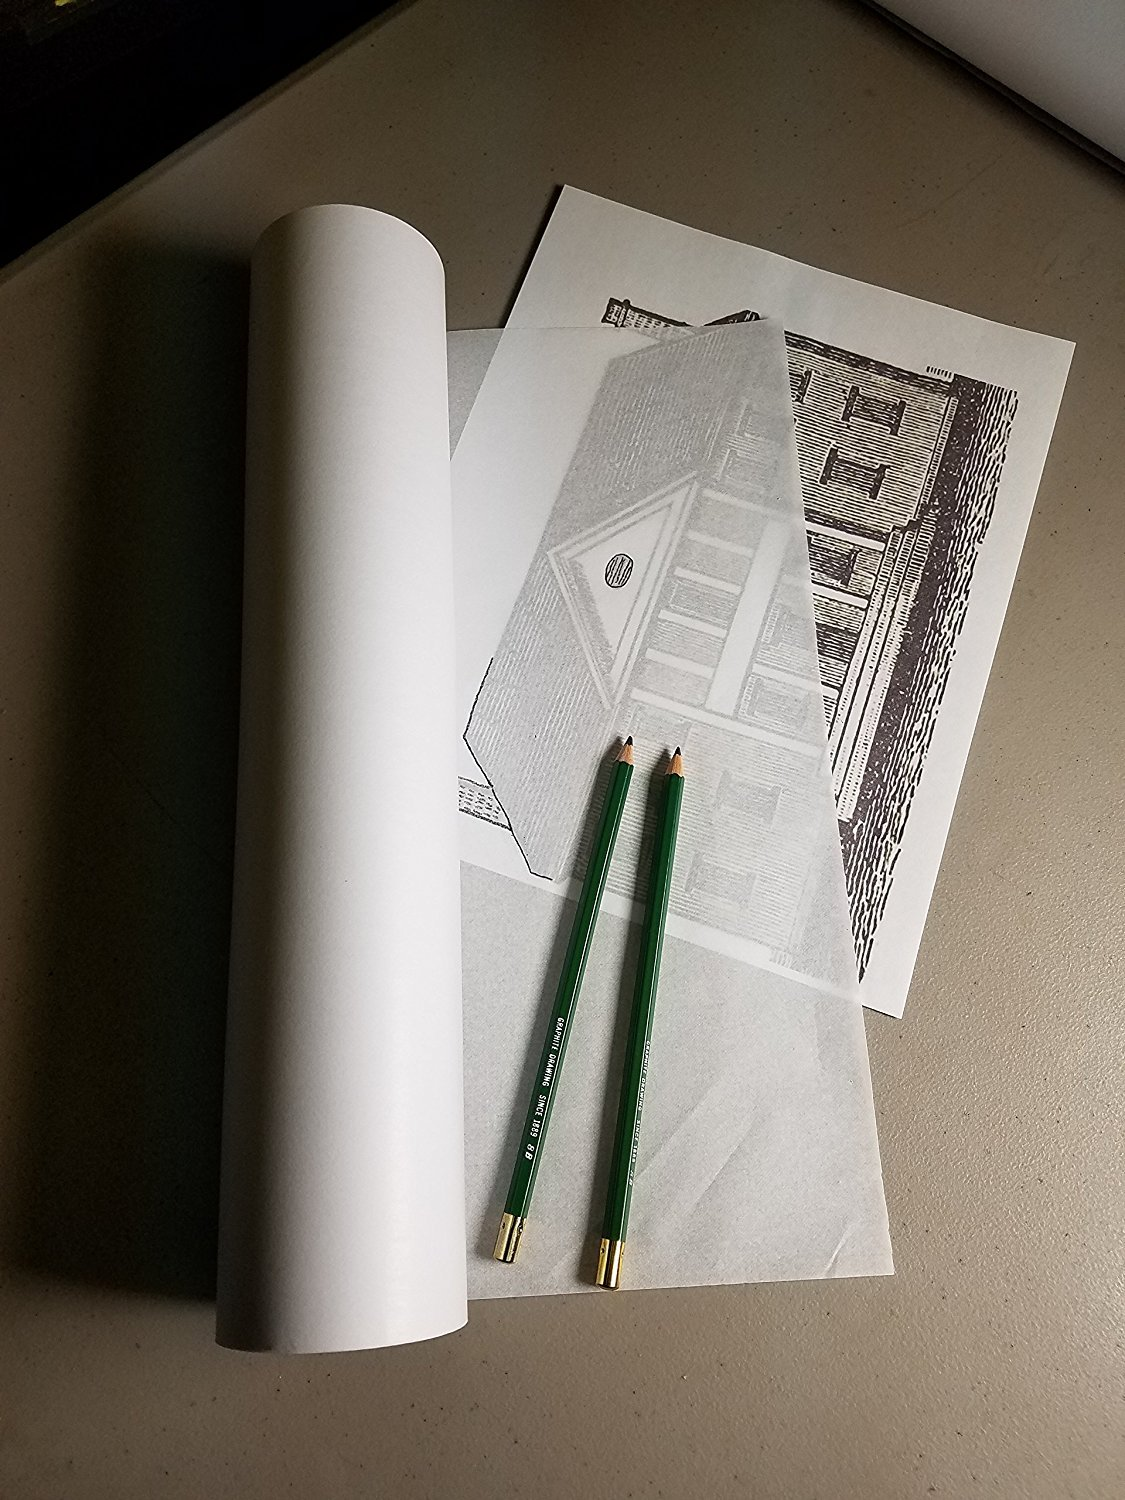 INCLUDES 2 TWO #8B Soft Graphite Sketching Pencils 75 Yards Princeton Supply Tracing Paper Roll 14 Inches X 225 Feet